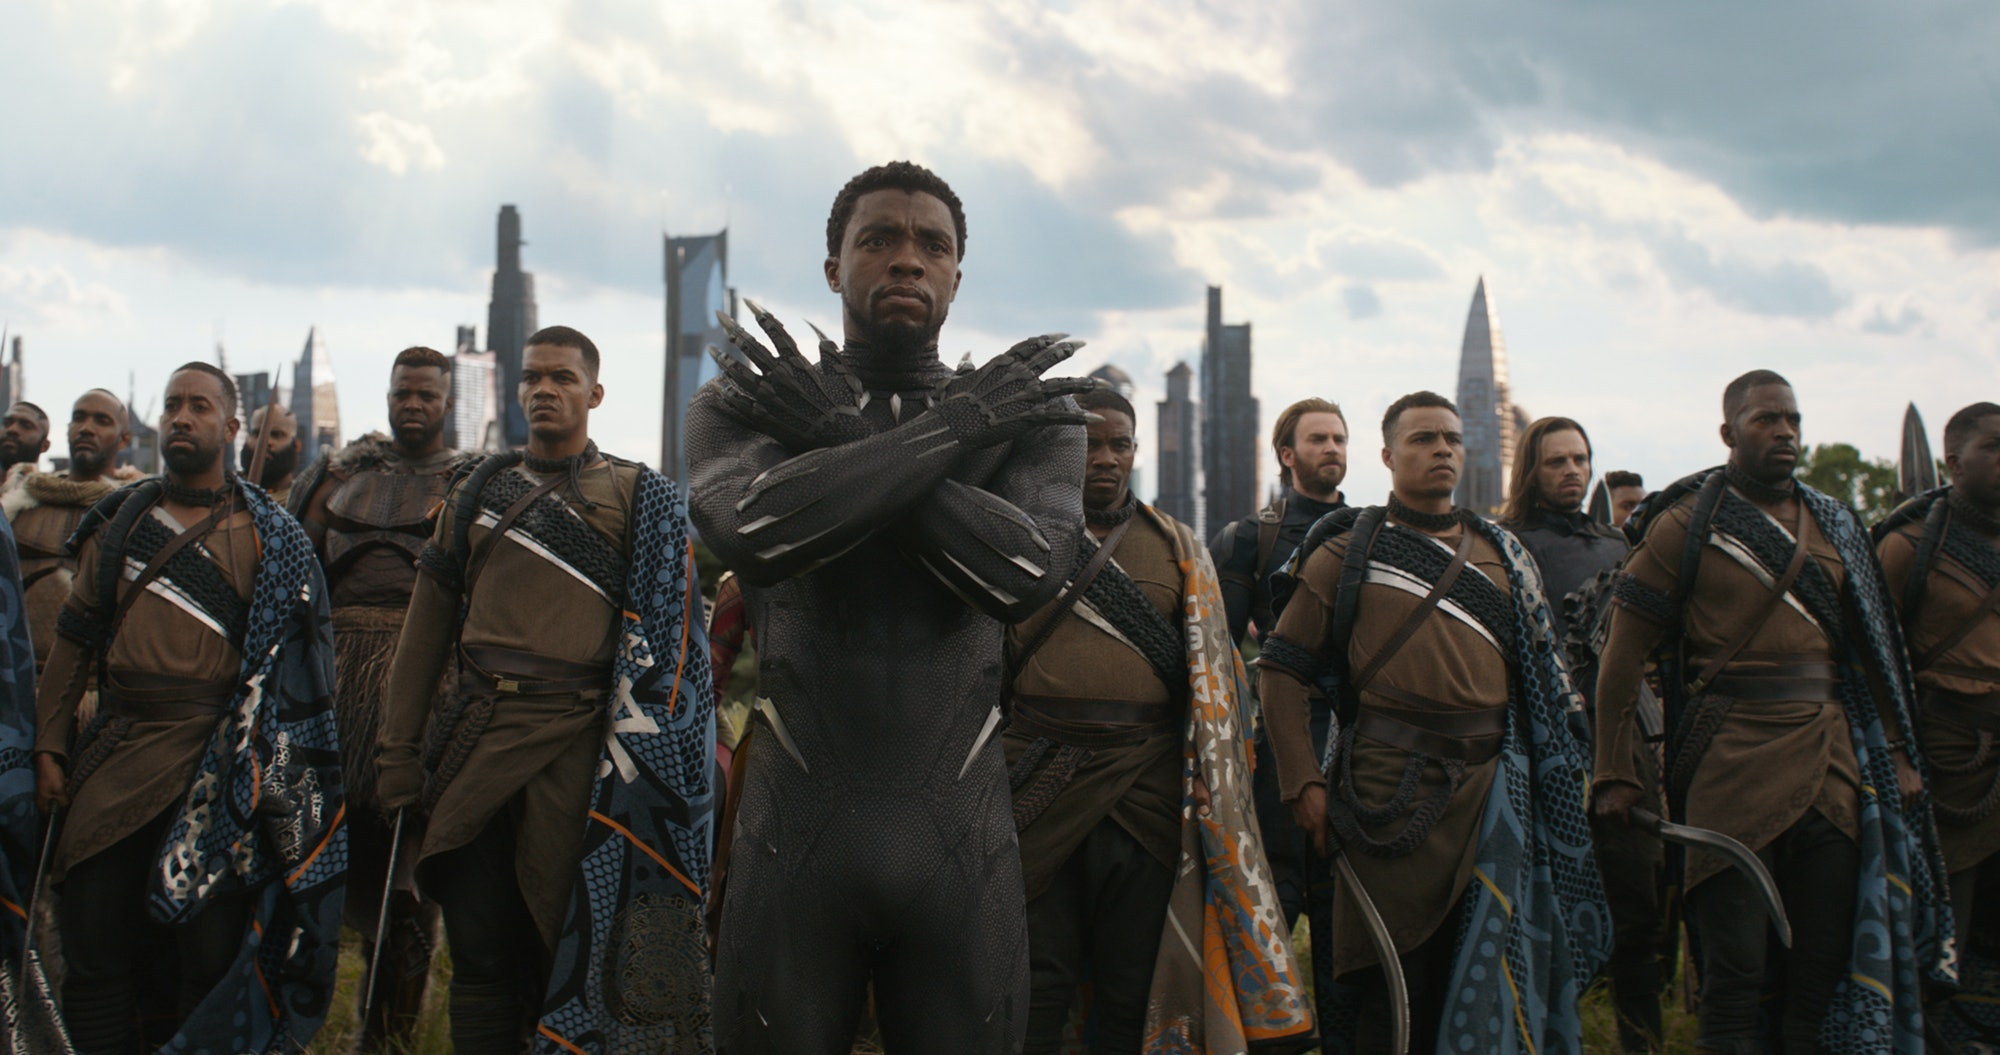 Black Panther in 'Avengers: Infinity War'.